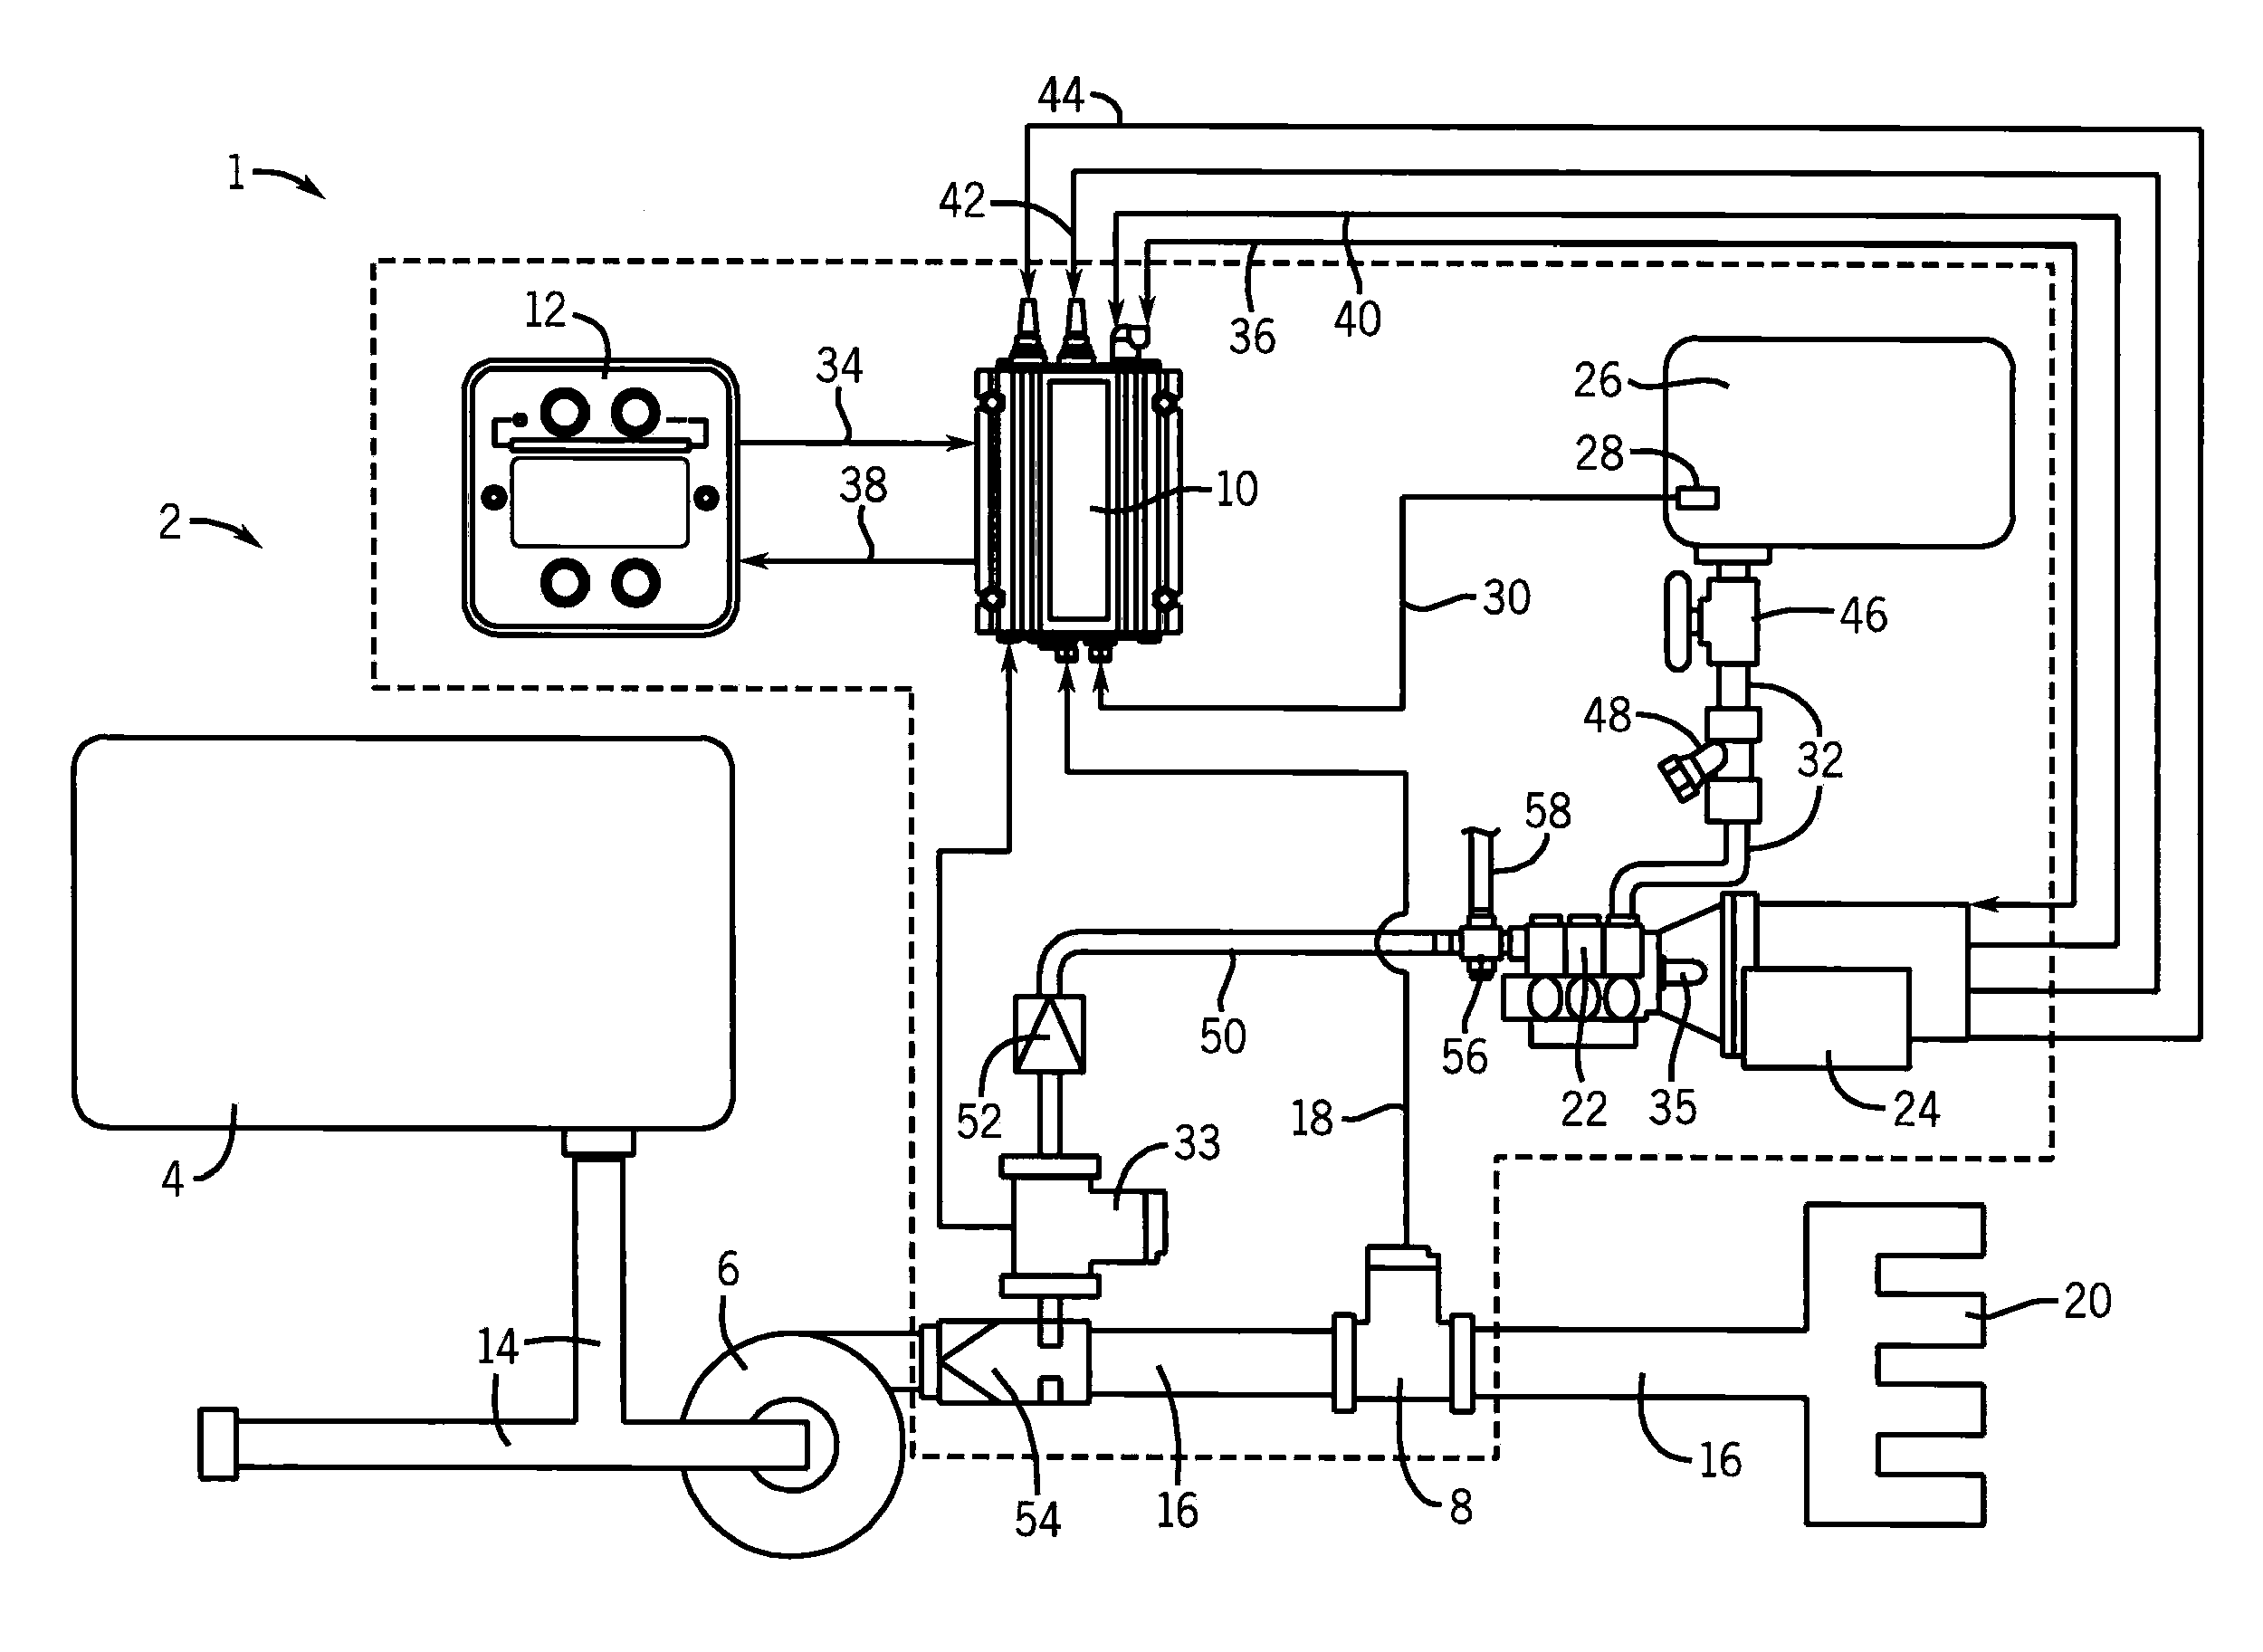 Search additionally Faqs also Wn16 309 as well Booster Pump After Pressure Tank likewise Viewhtml. on sprinkler system valve diagram